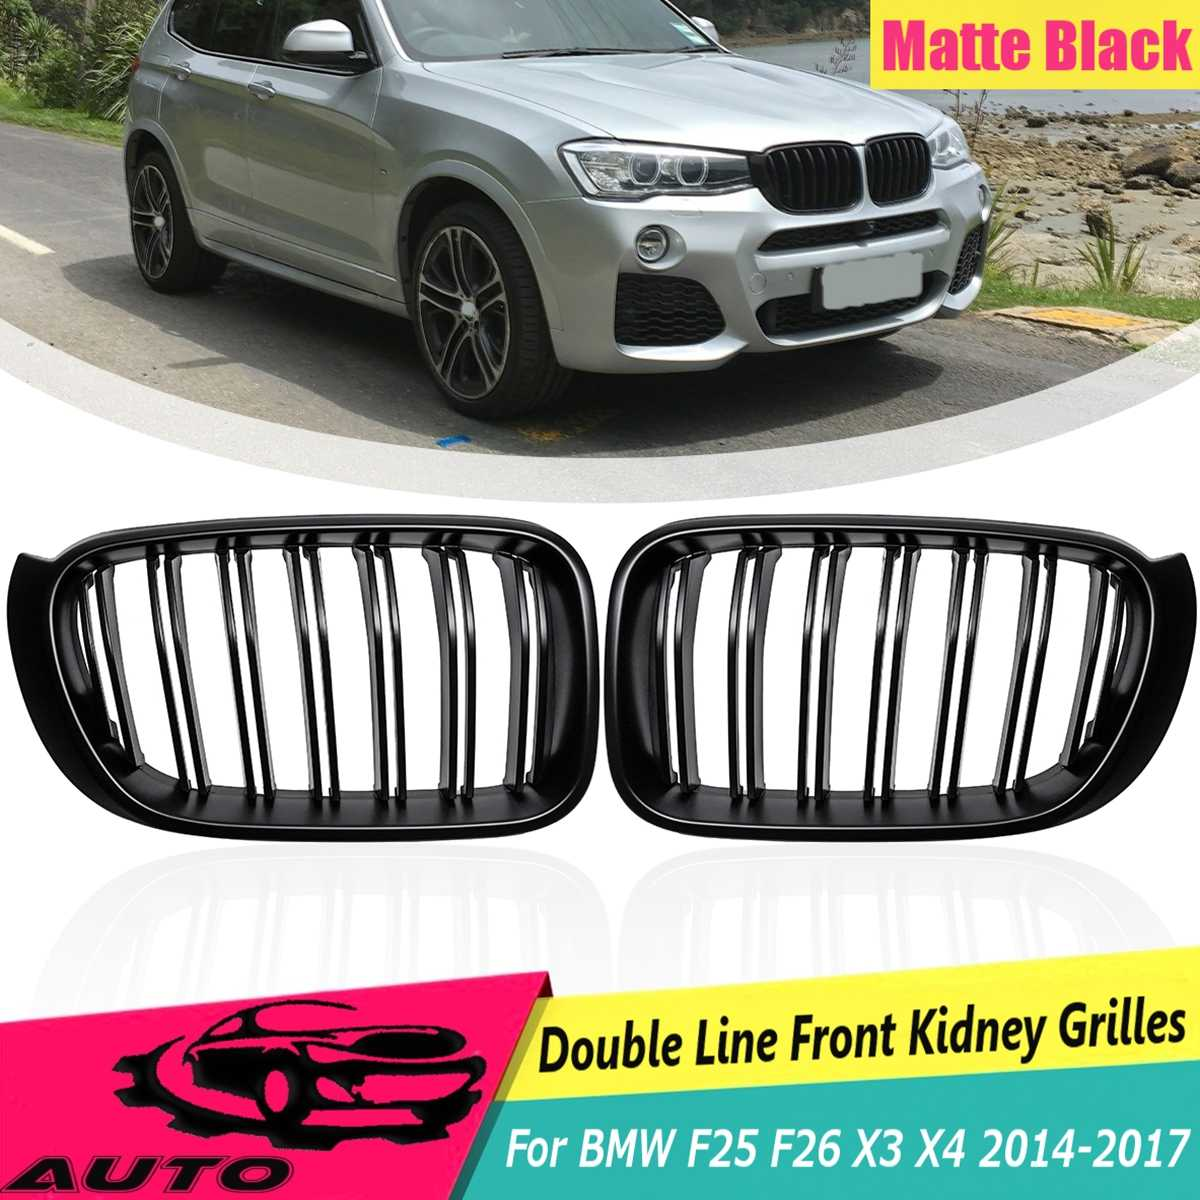 1 Pair ABS Matt Black 2 Line Slat Front Kidney Grill Racing Grill Replacement For BMW F25 F26 X3 X4 2014 2015 2016 20171 Pair ABS Matt Black 2 Line Slat Front Kidney Grill Racing Grill Replacement For BMW F25 F26 X3 X4 2014 2015 2016 2017